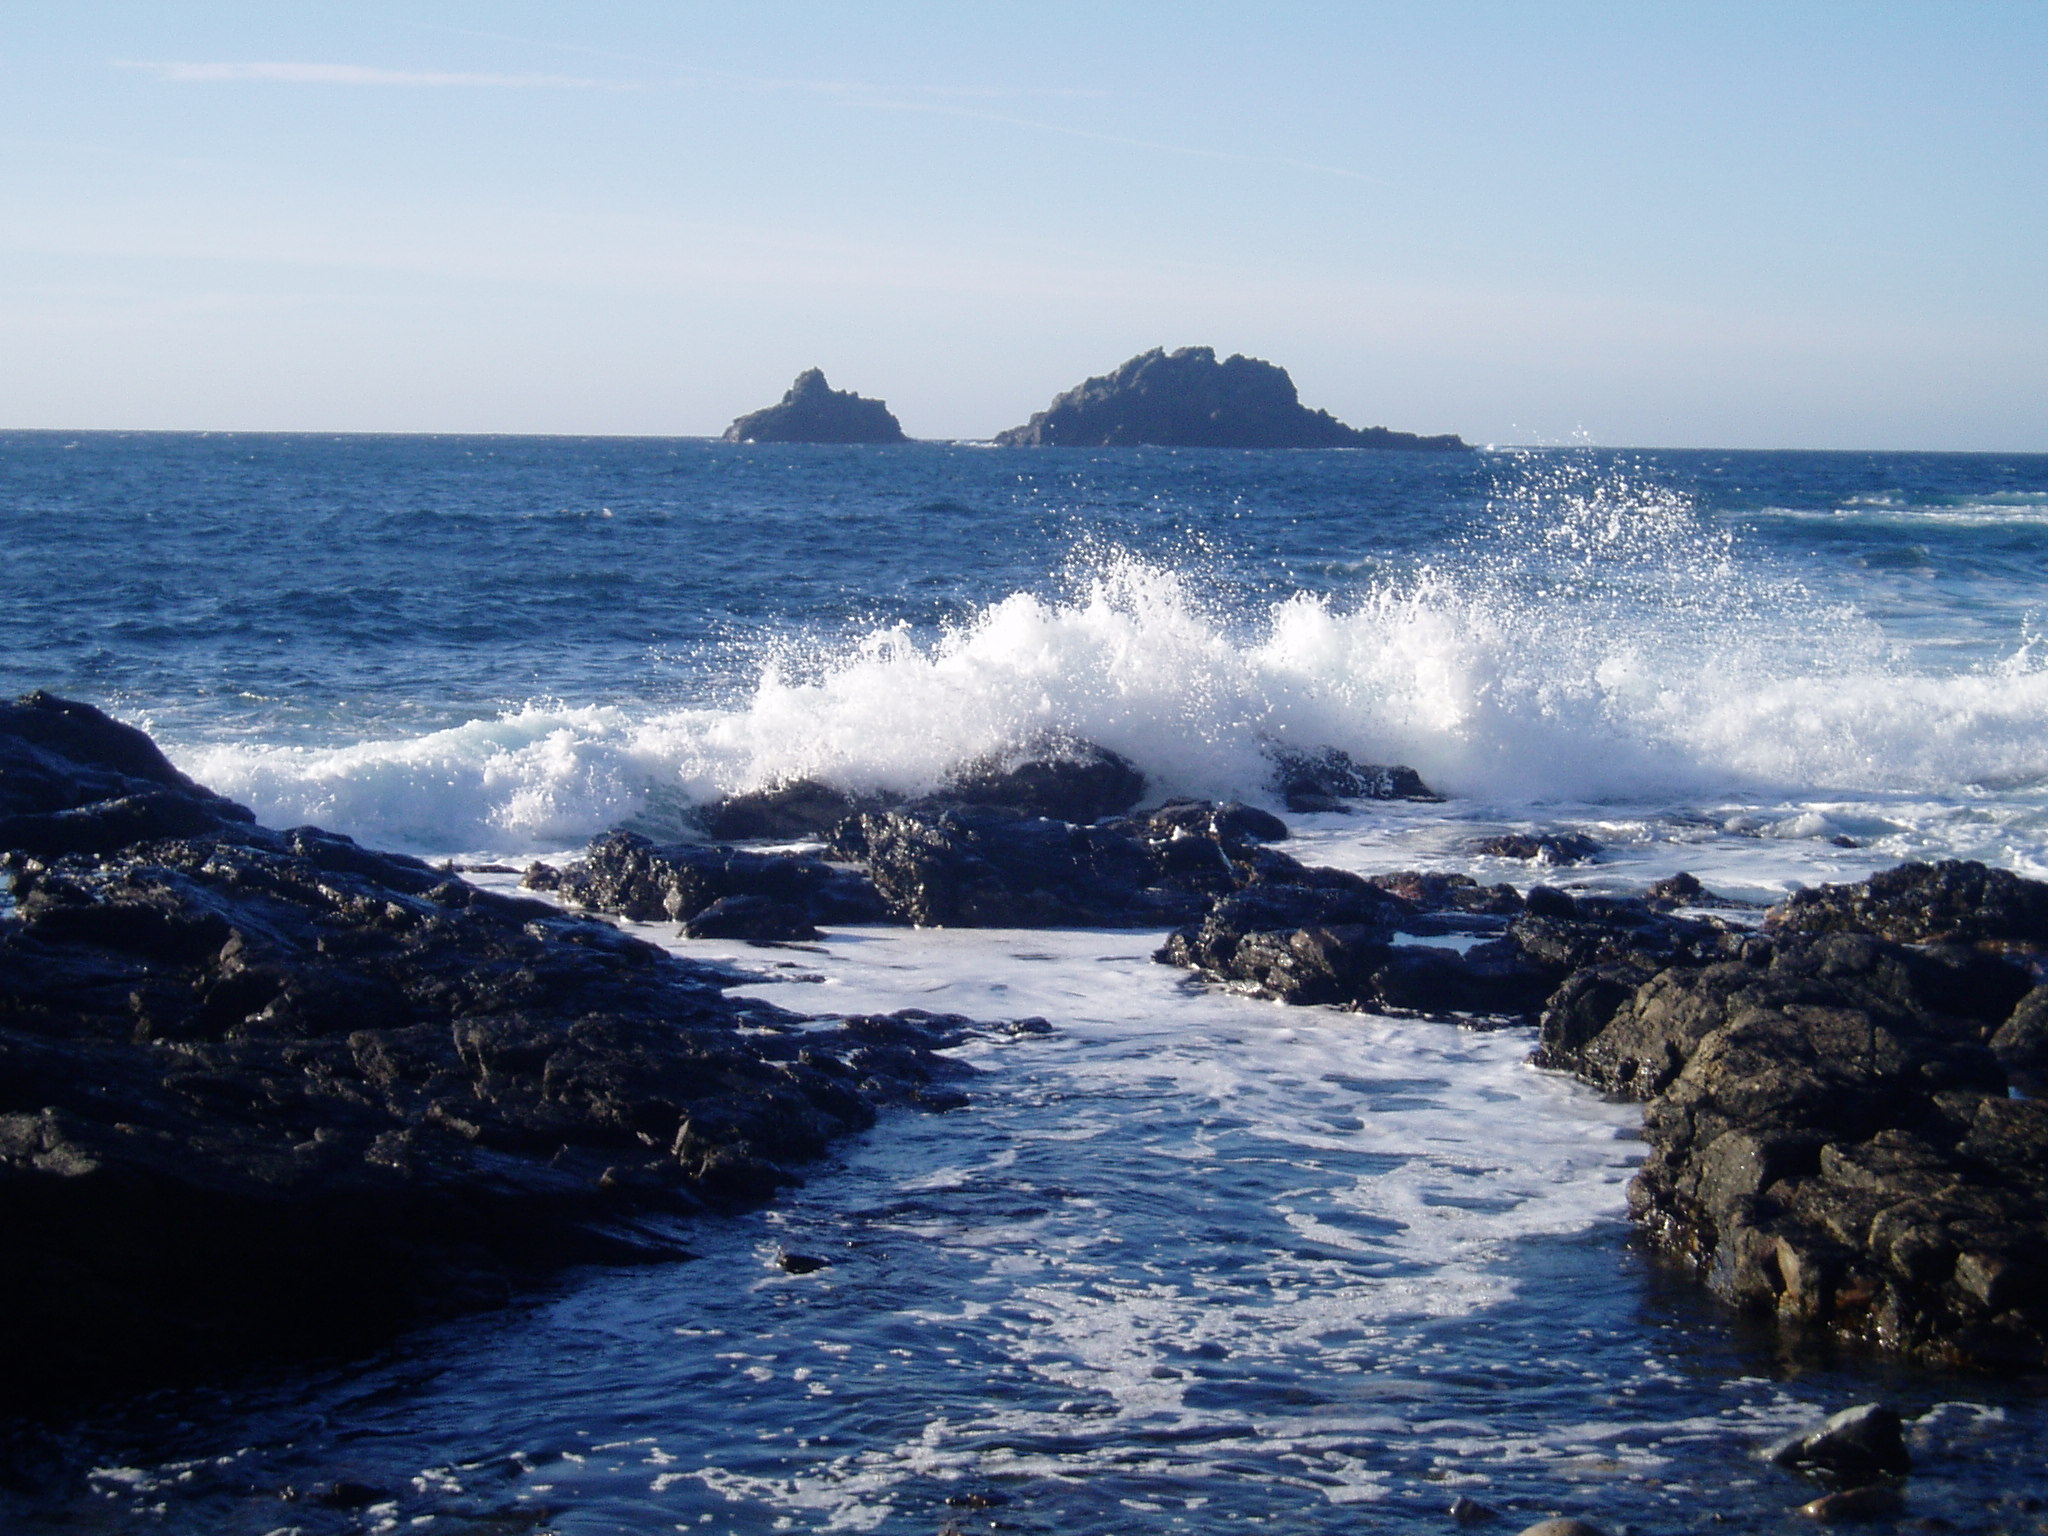 Waves breaking at Priests Cove, Cape Cornwall with The Brisons in distance